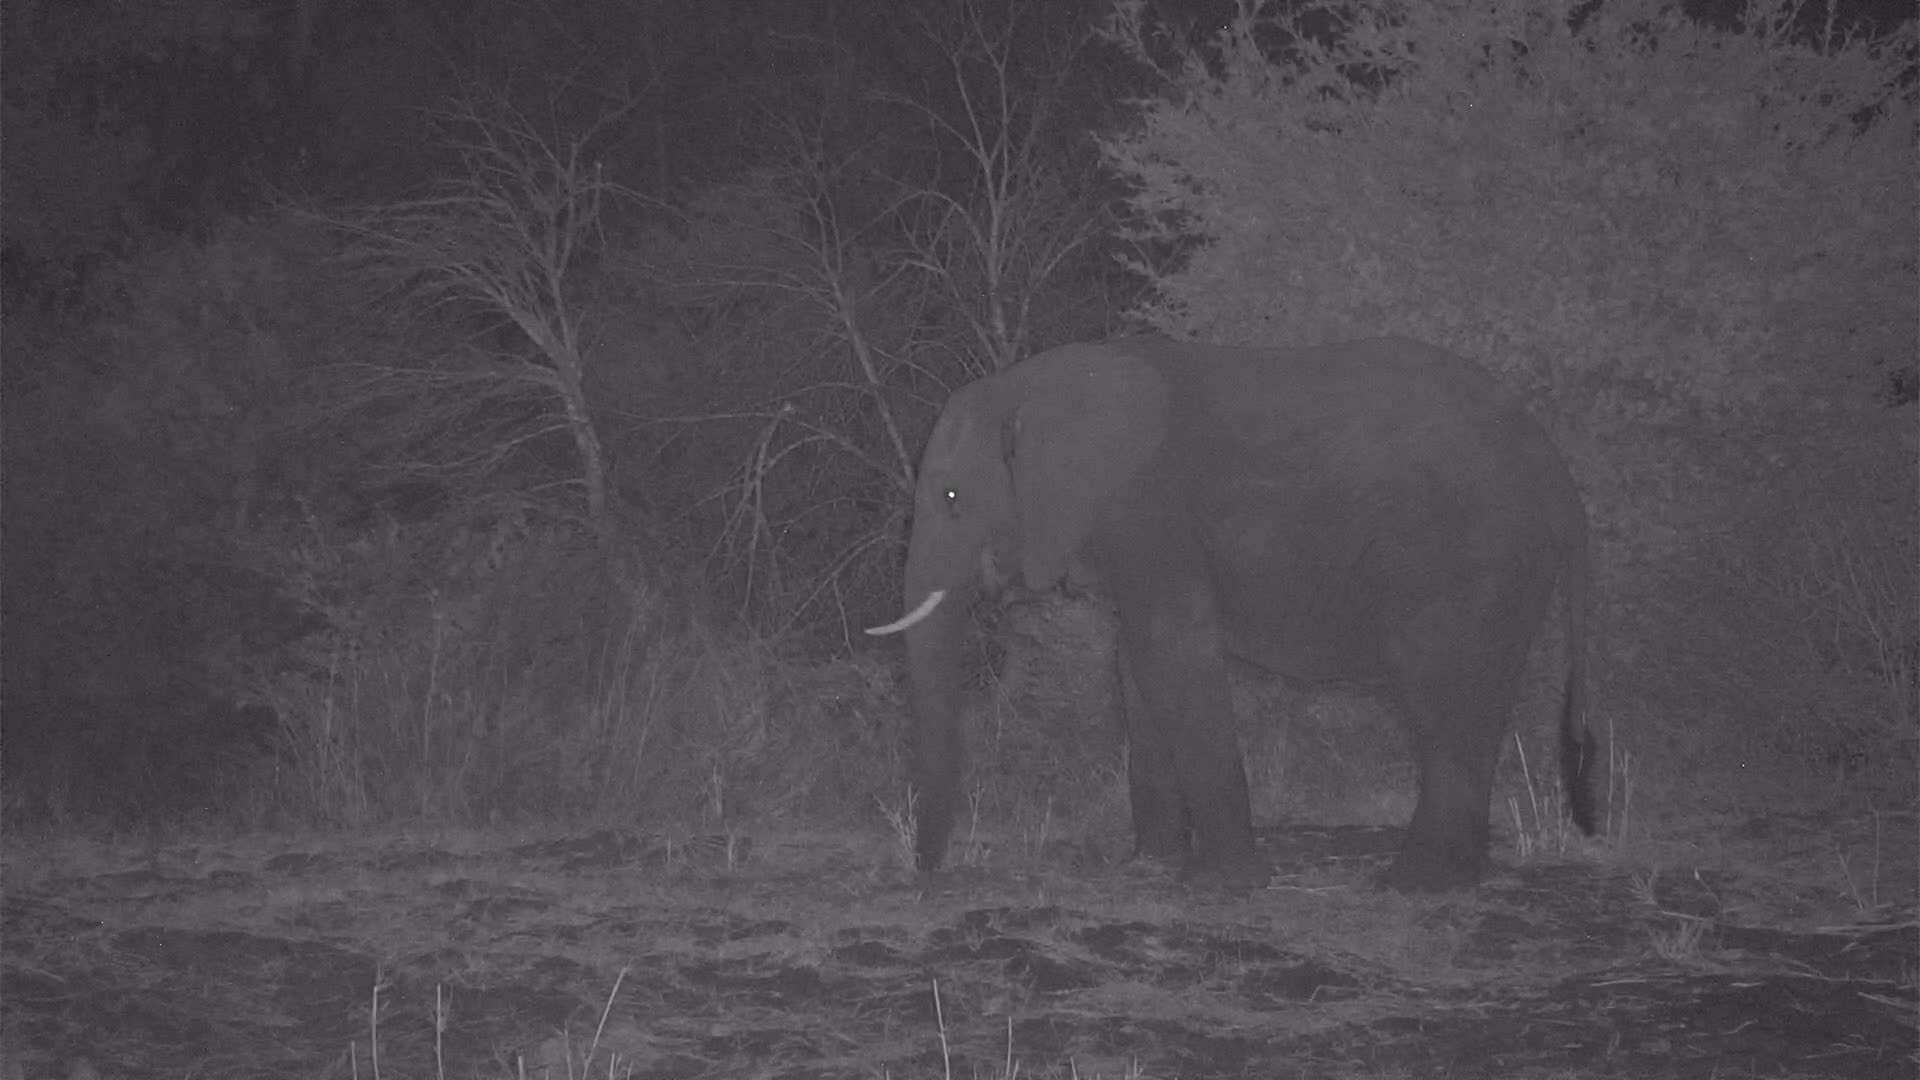 VIDEO: Elephant digs for roots